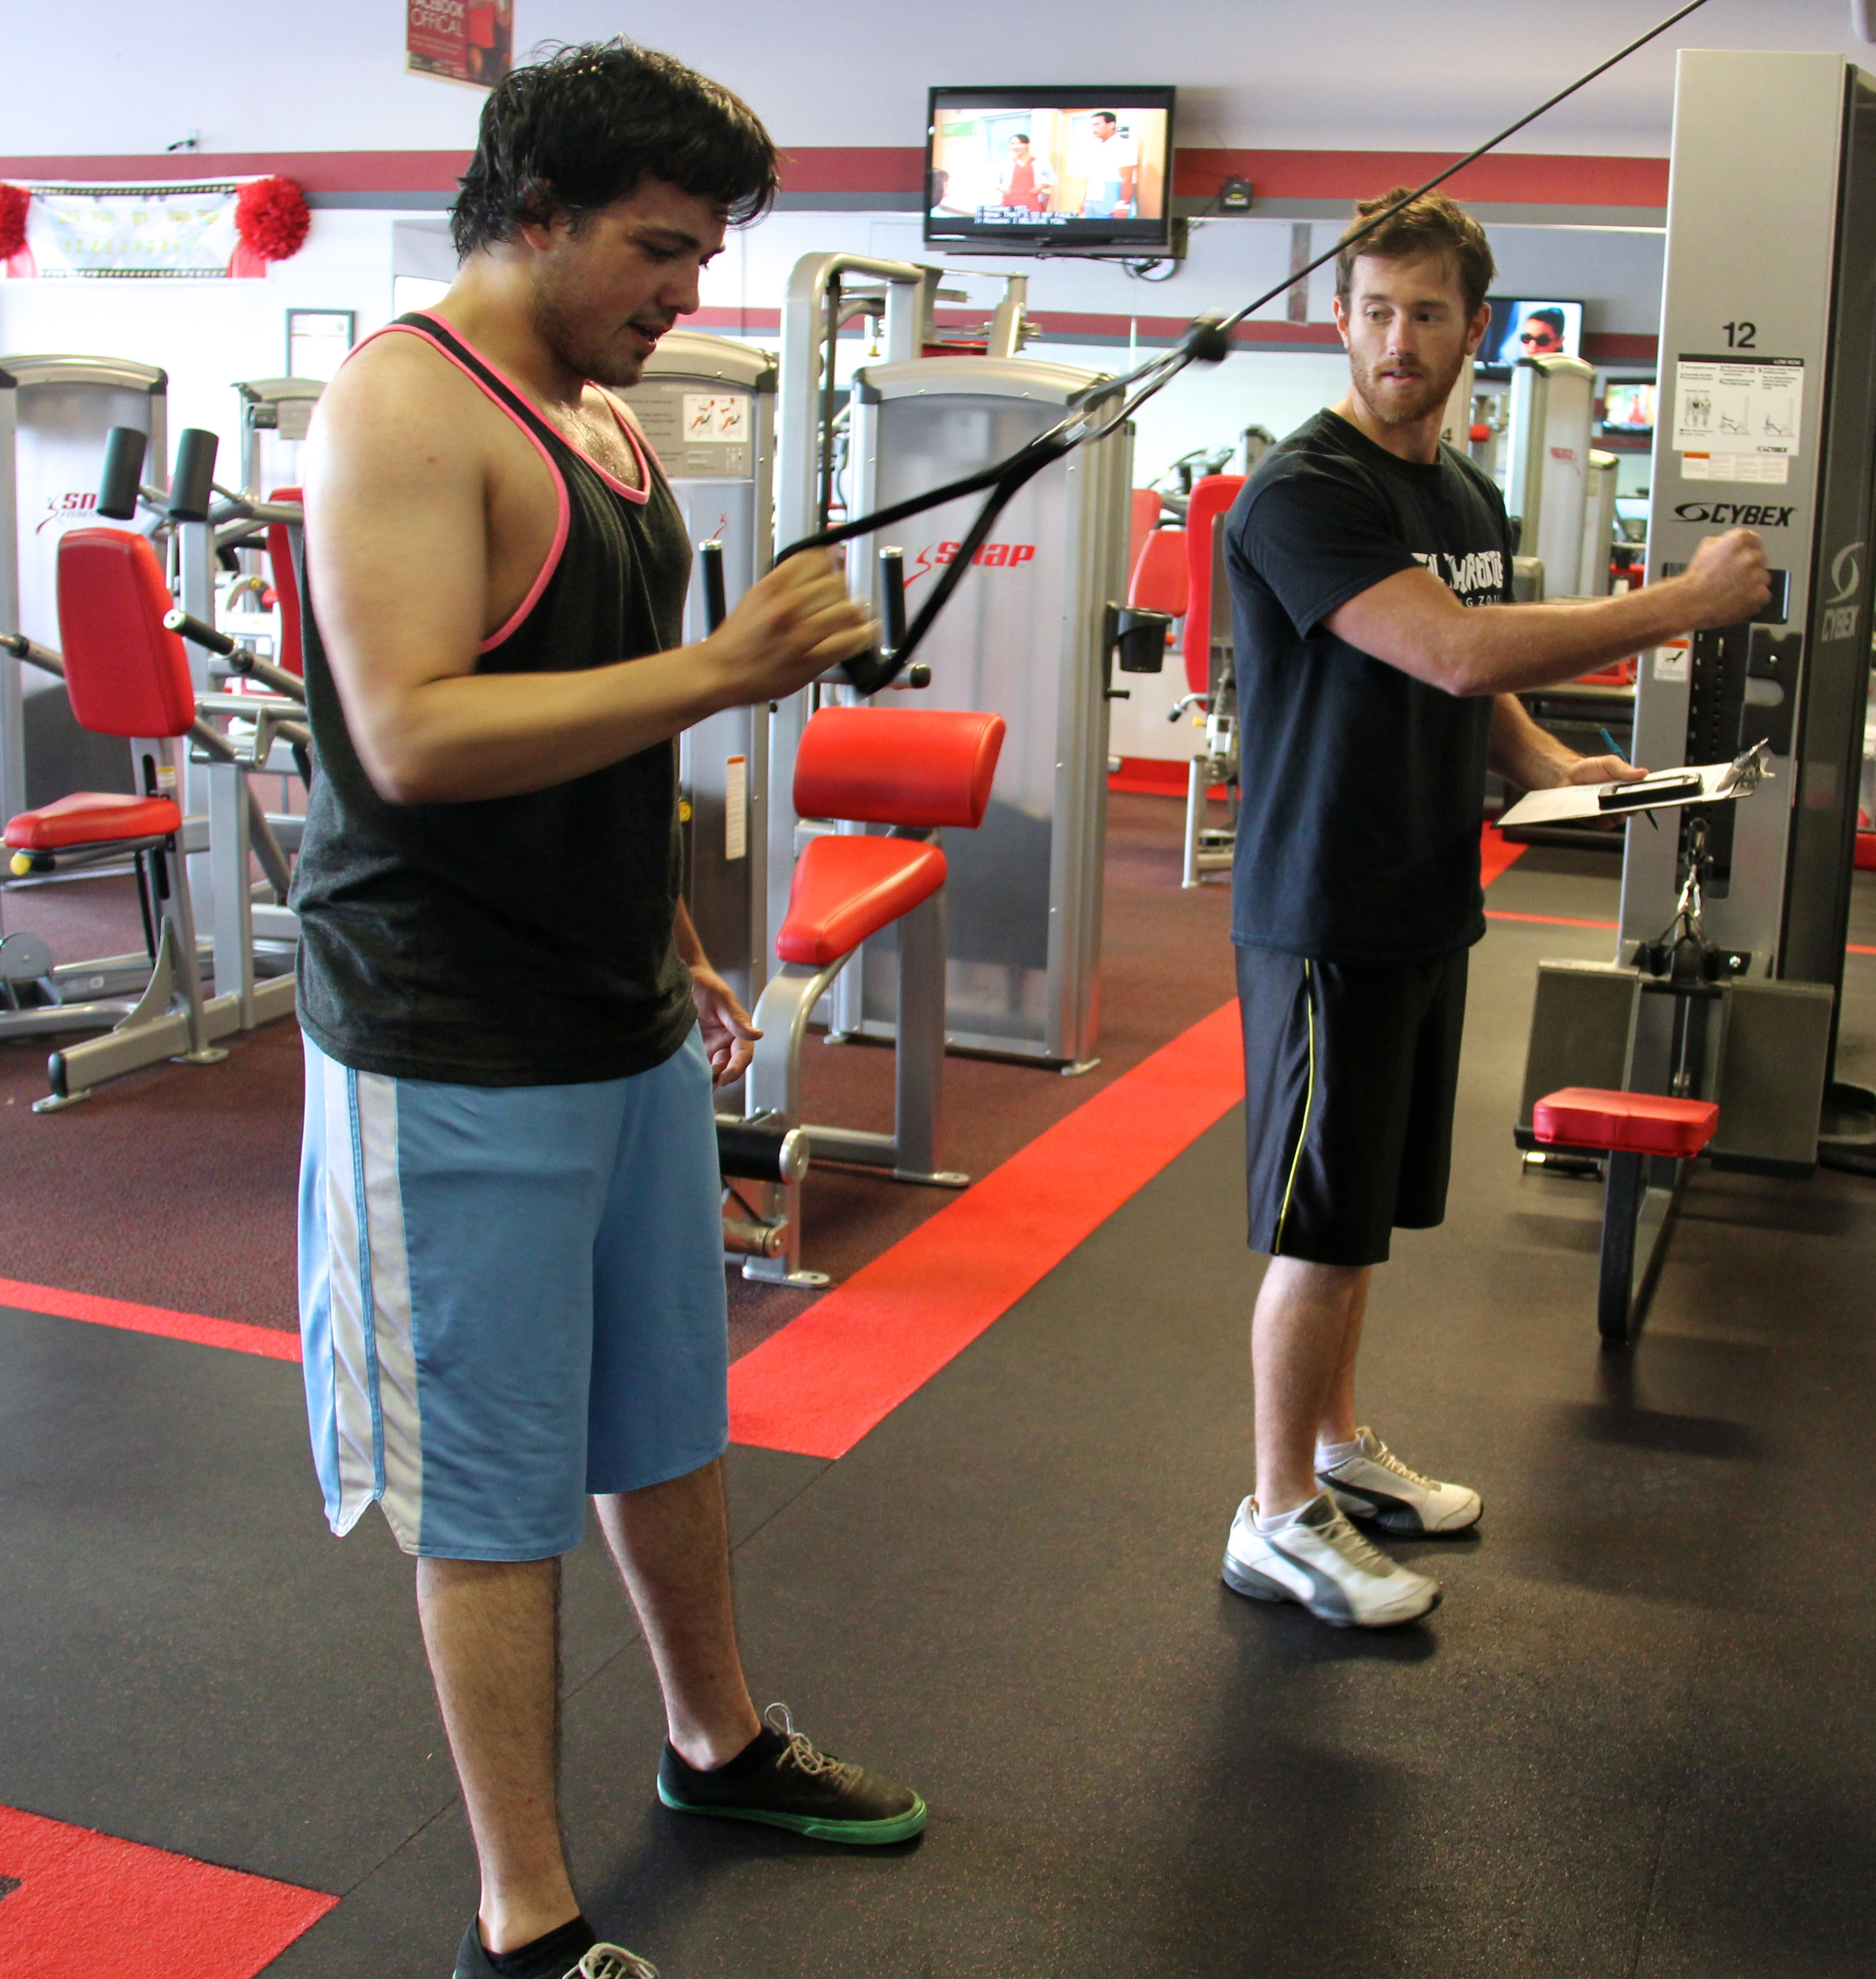 personal training, personal training in harrison township, gym in harrison township